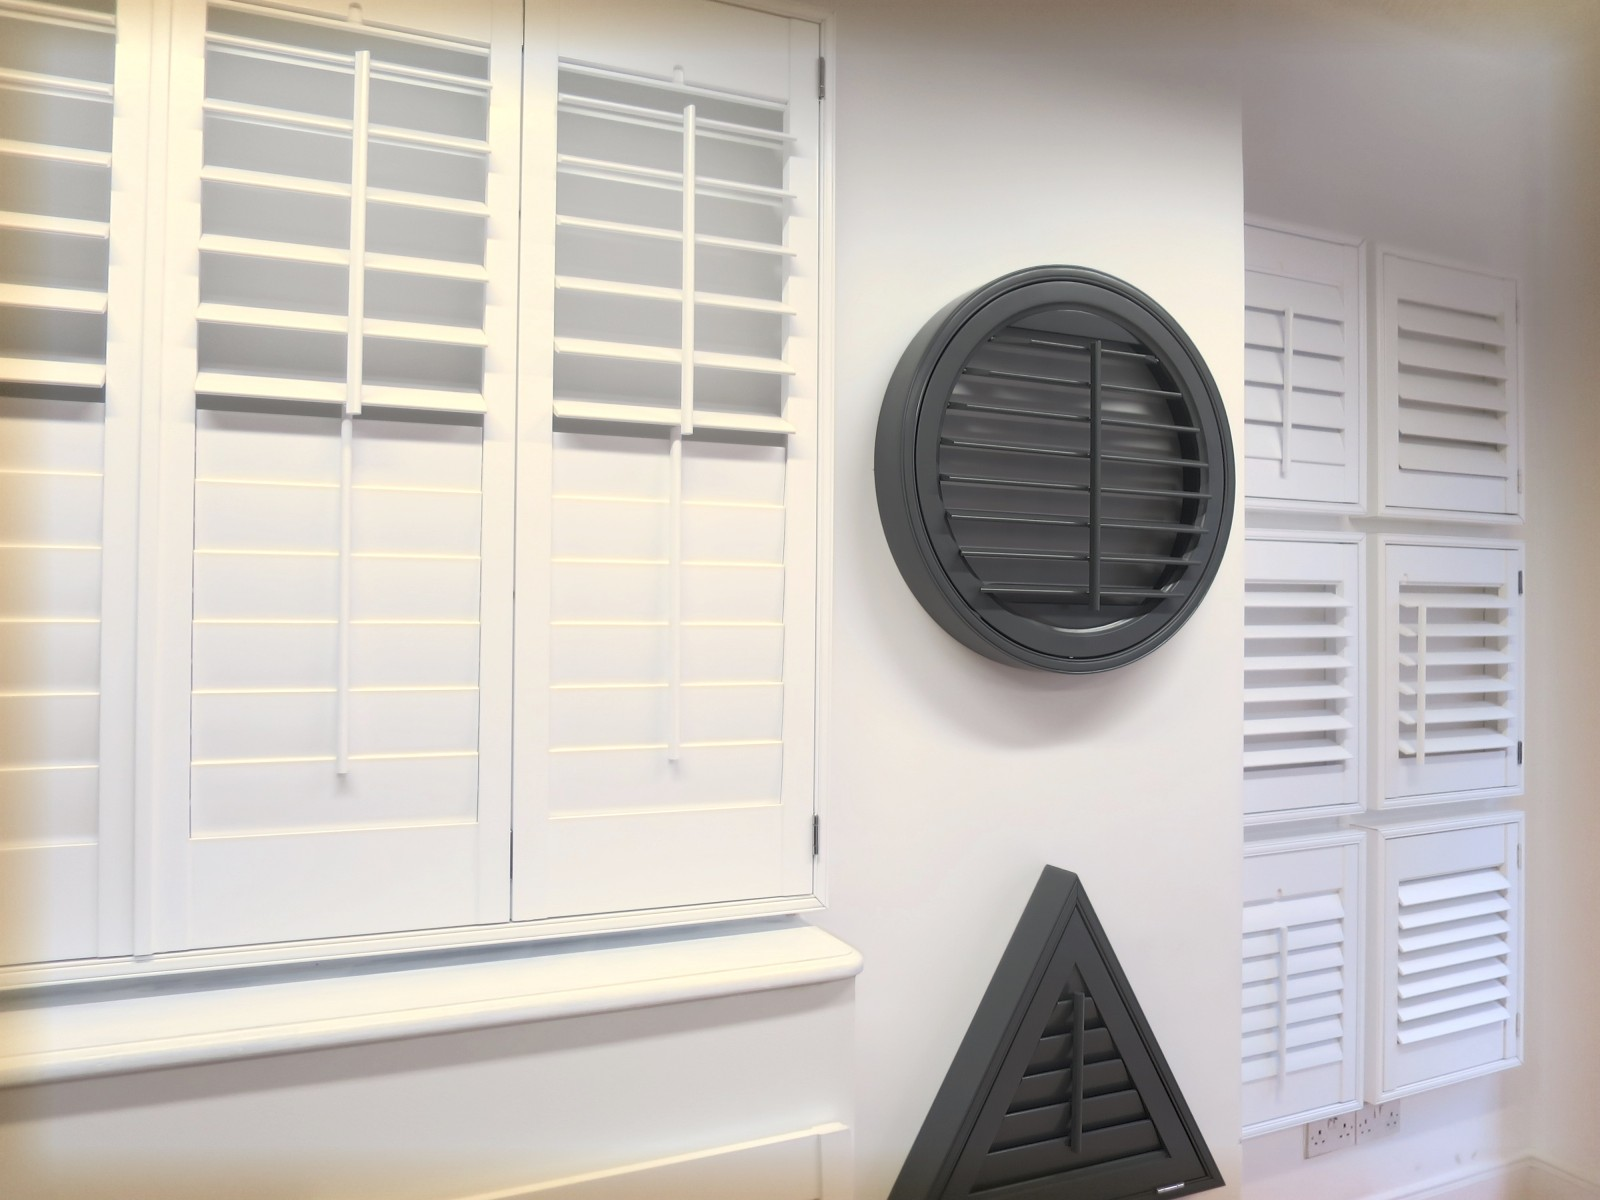 Well-liked 6 Reasons Why Shutters Are Good For Round Windows - Shuttersouth HG02